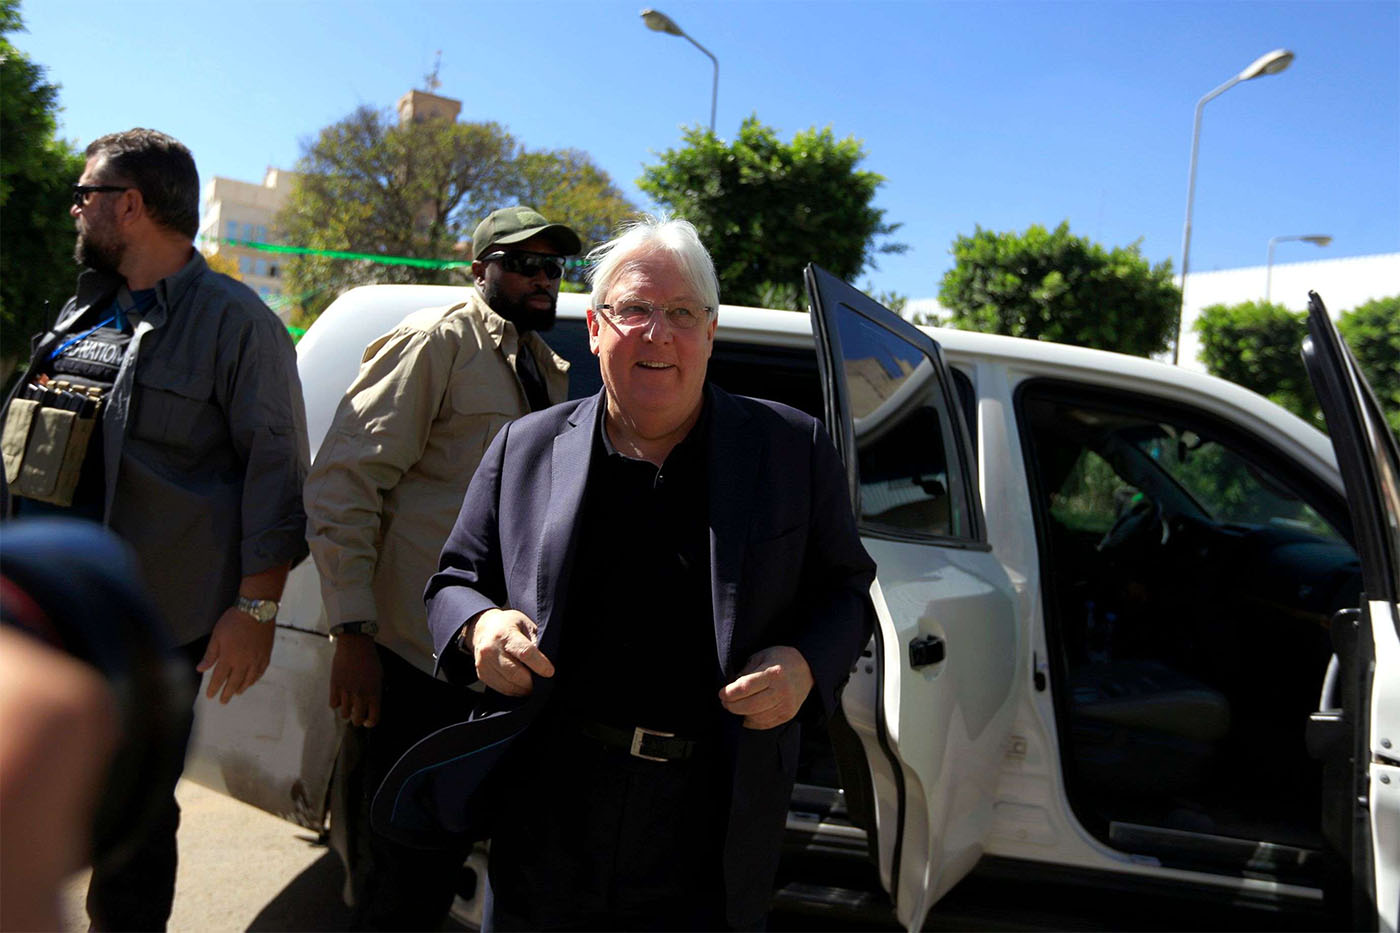 UN envoy Martin Griffiths flew with Huthi rebels to allay their concerns